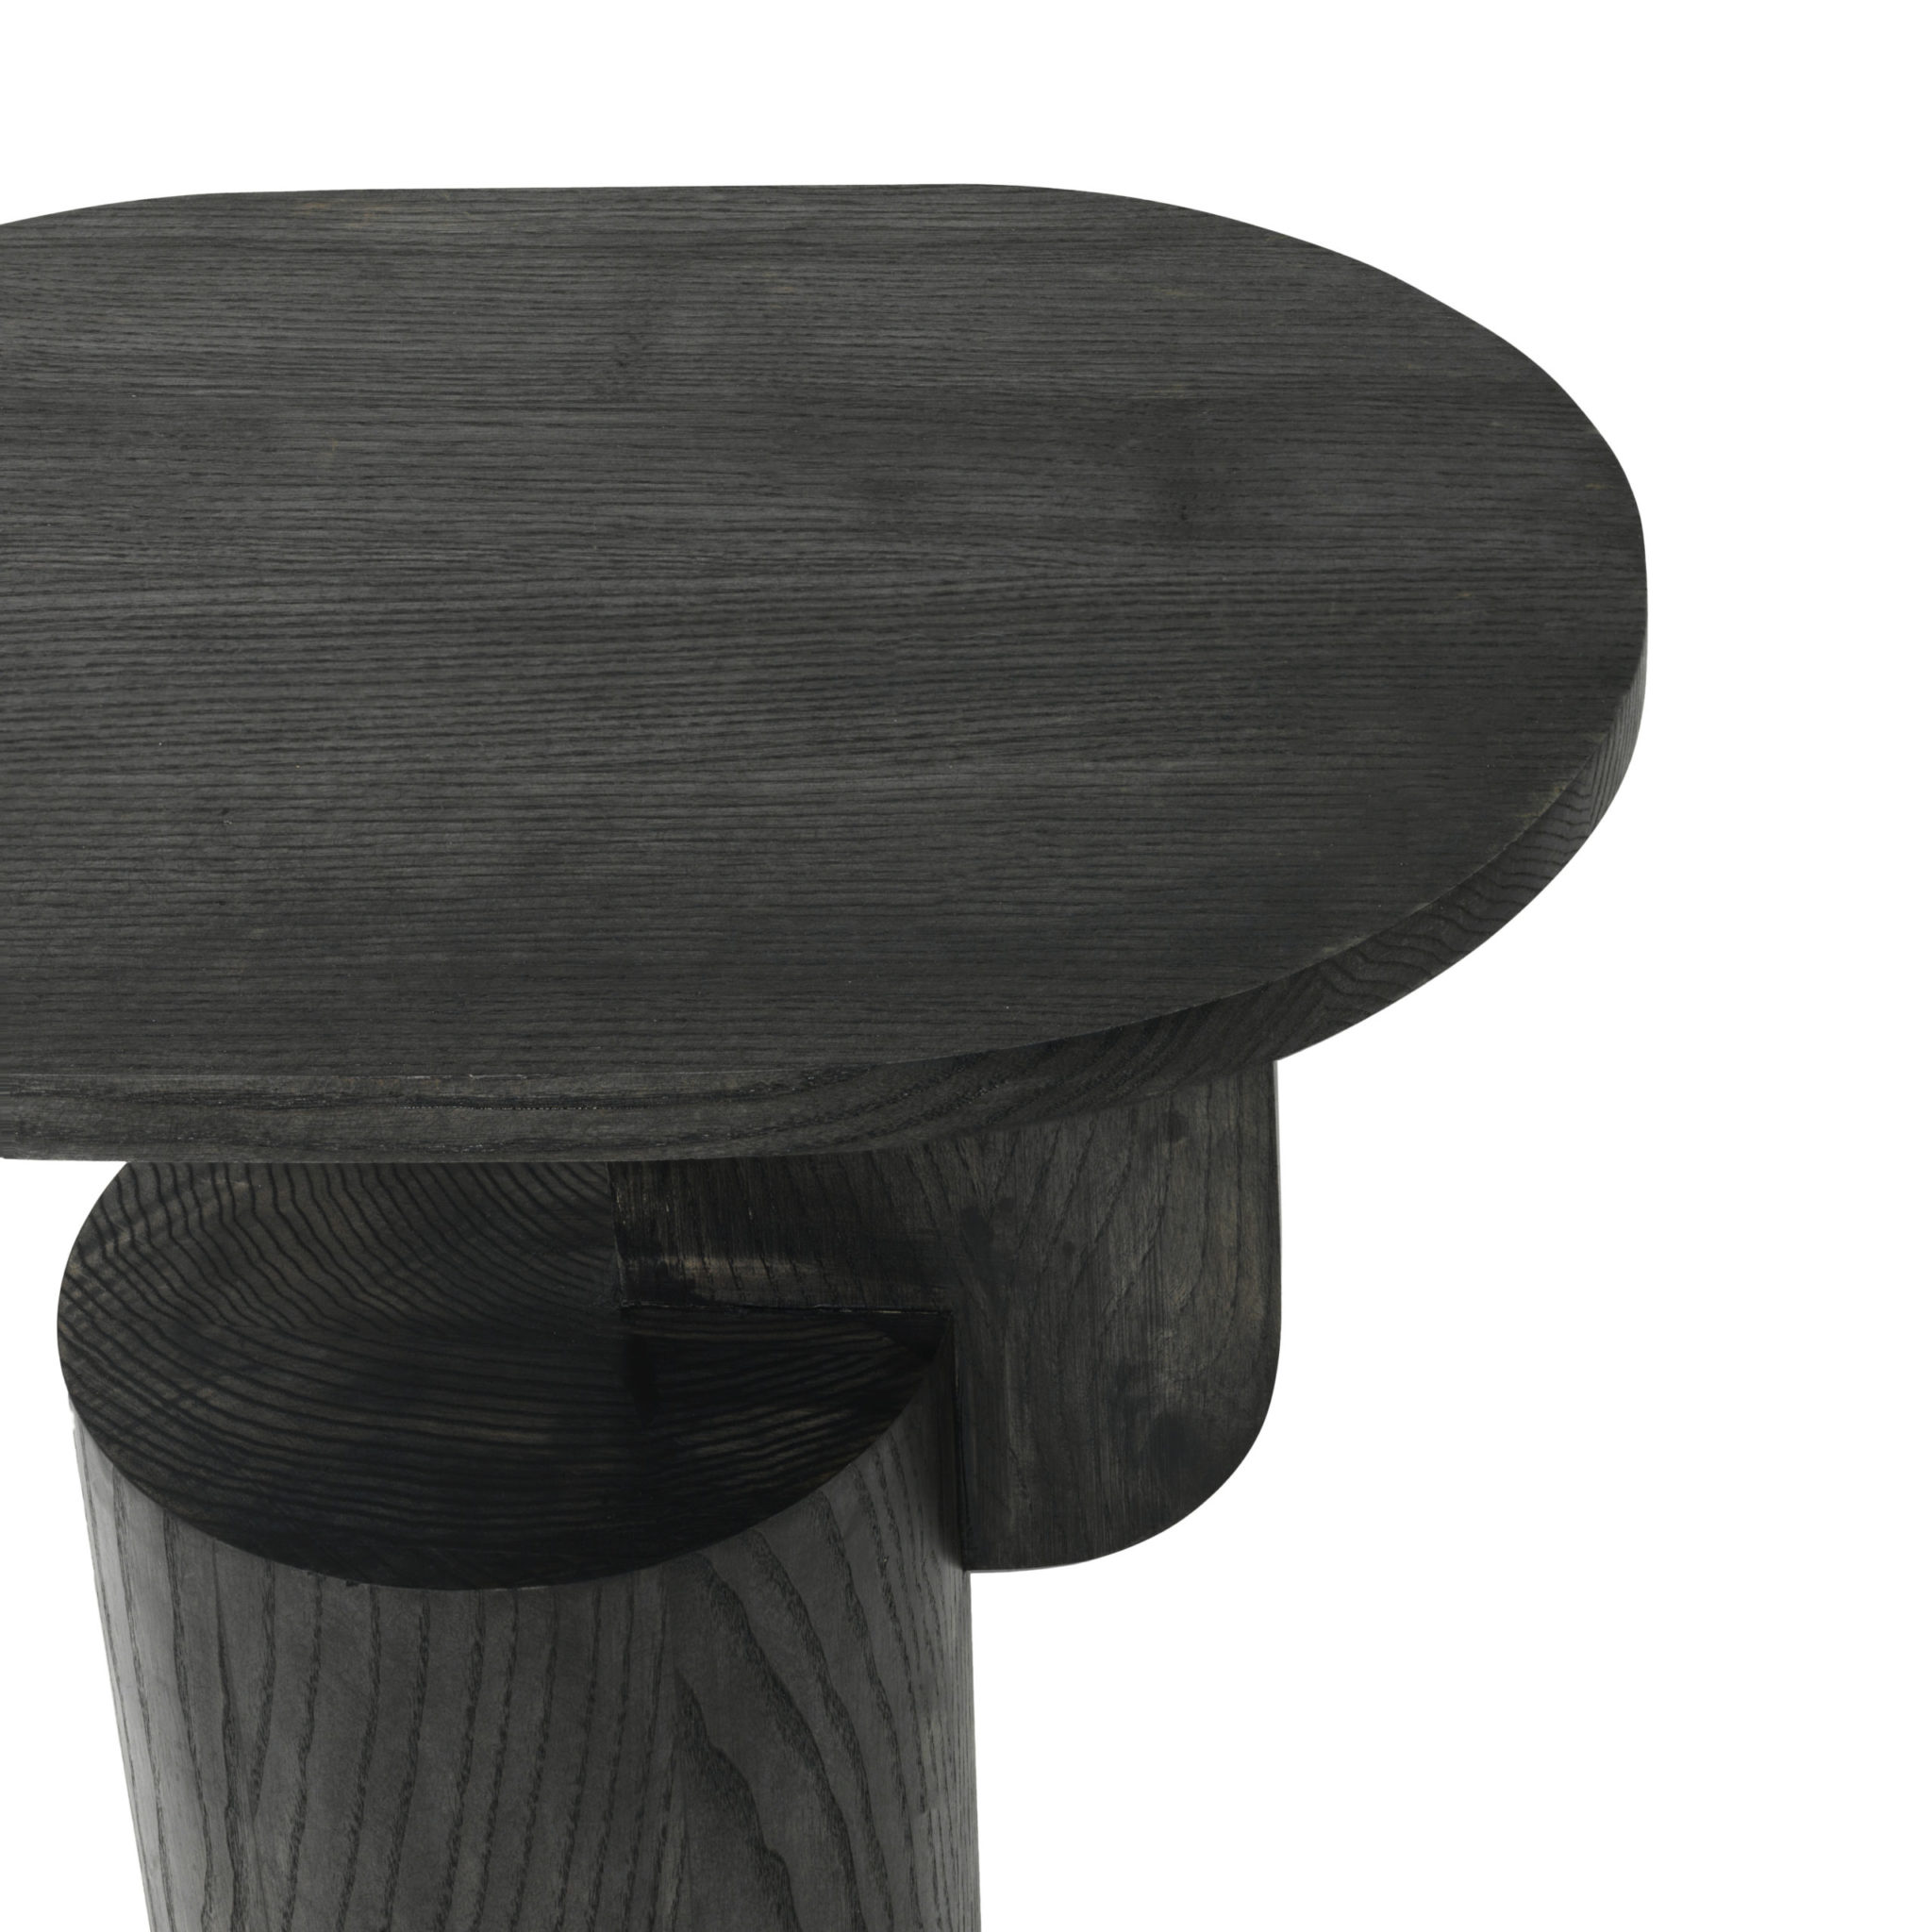 Insert Side Table - Black Stained Oak - Detail View White Background